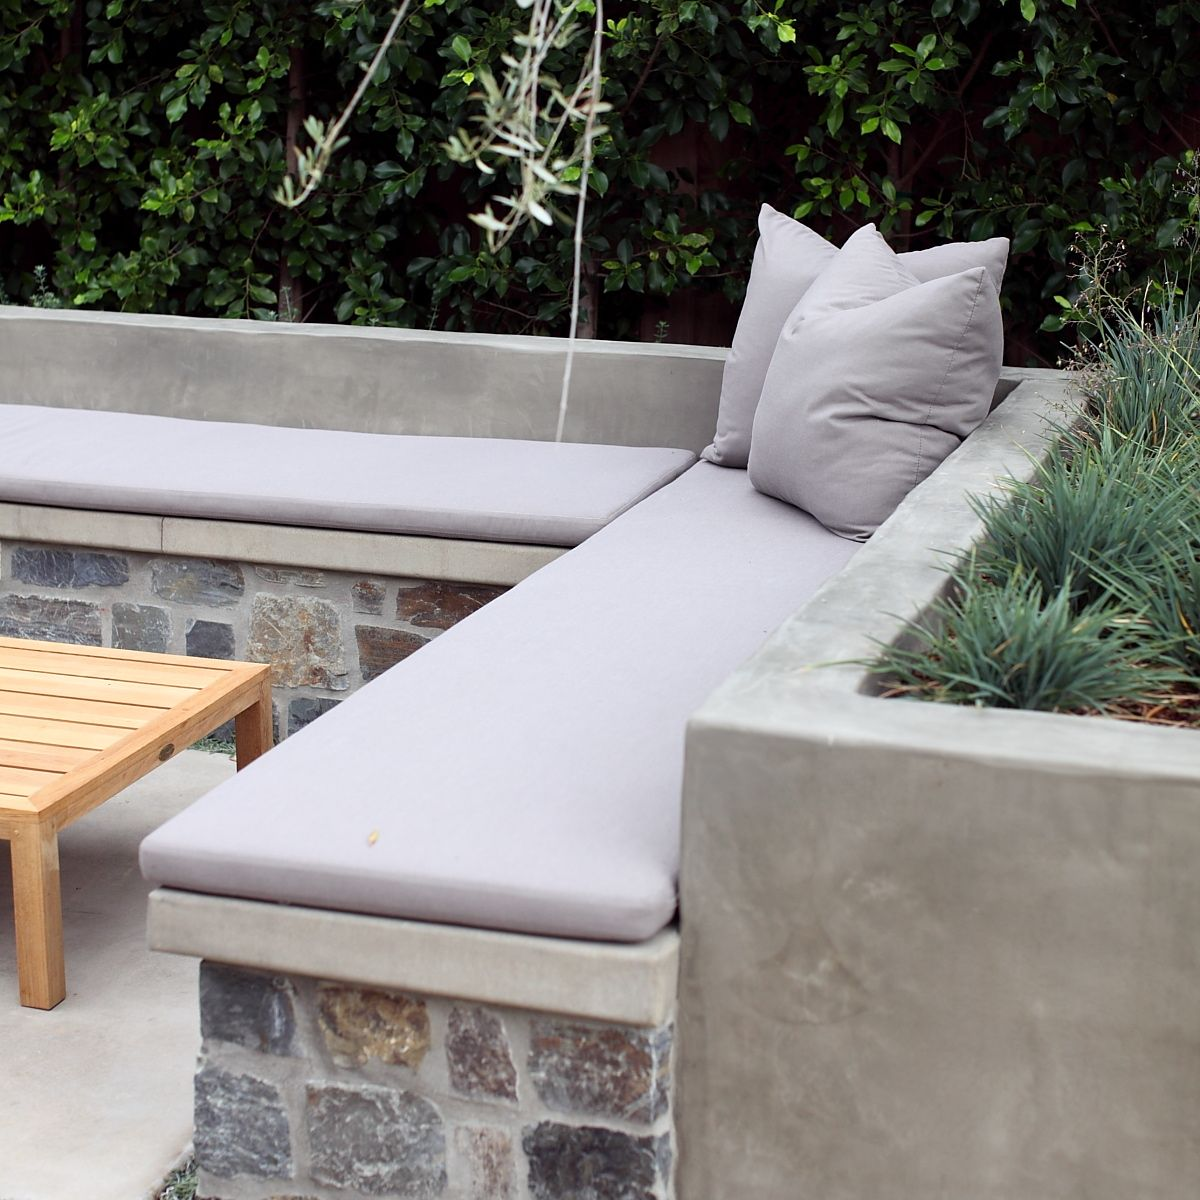 Built In Bench Seating With Cushion Loon Lake Stone Veneer And Smooth Stucco Finish